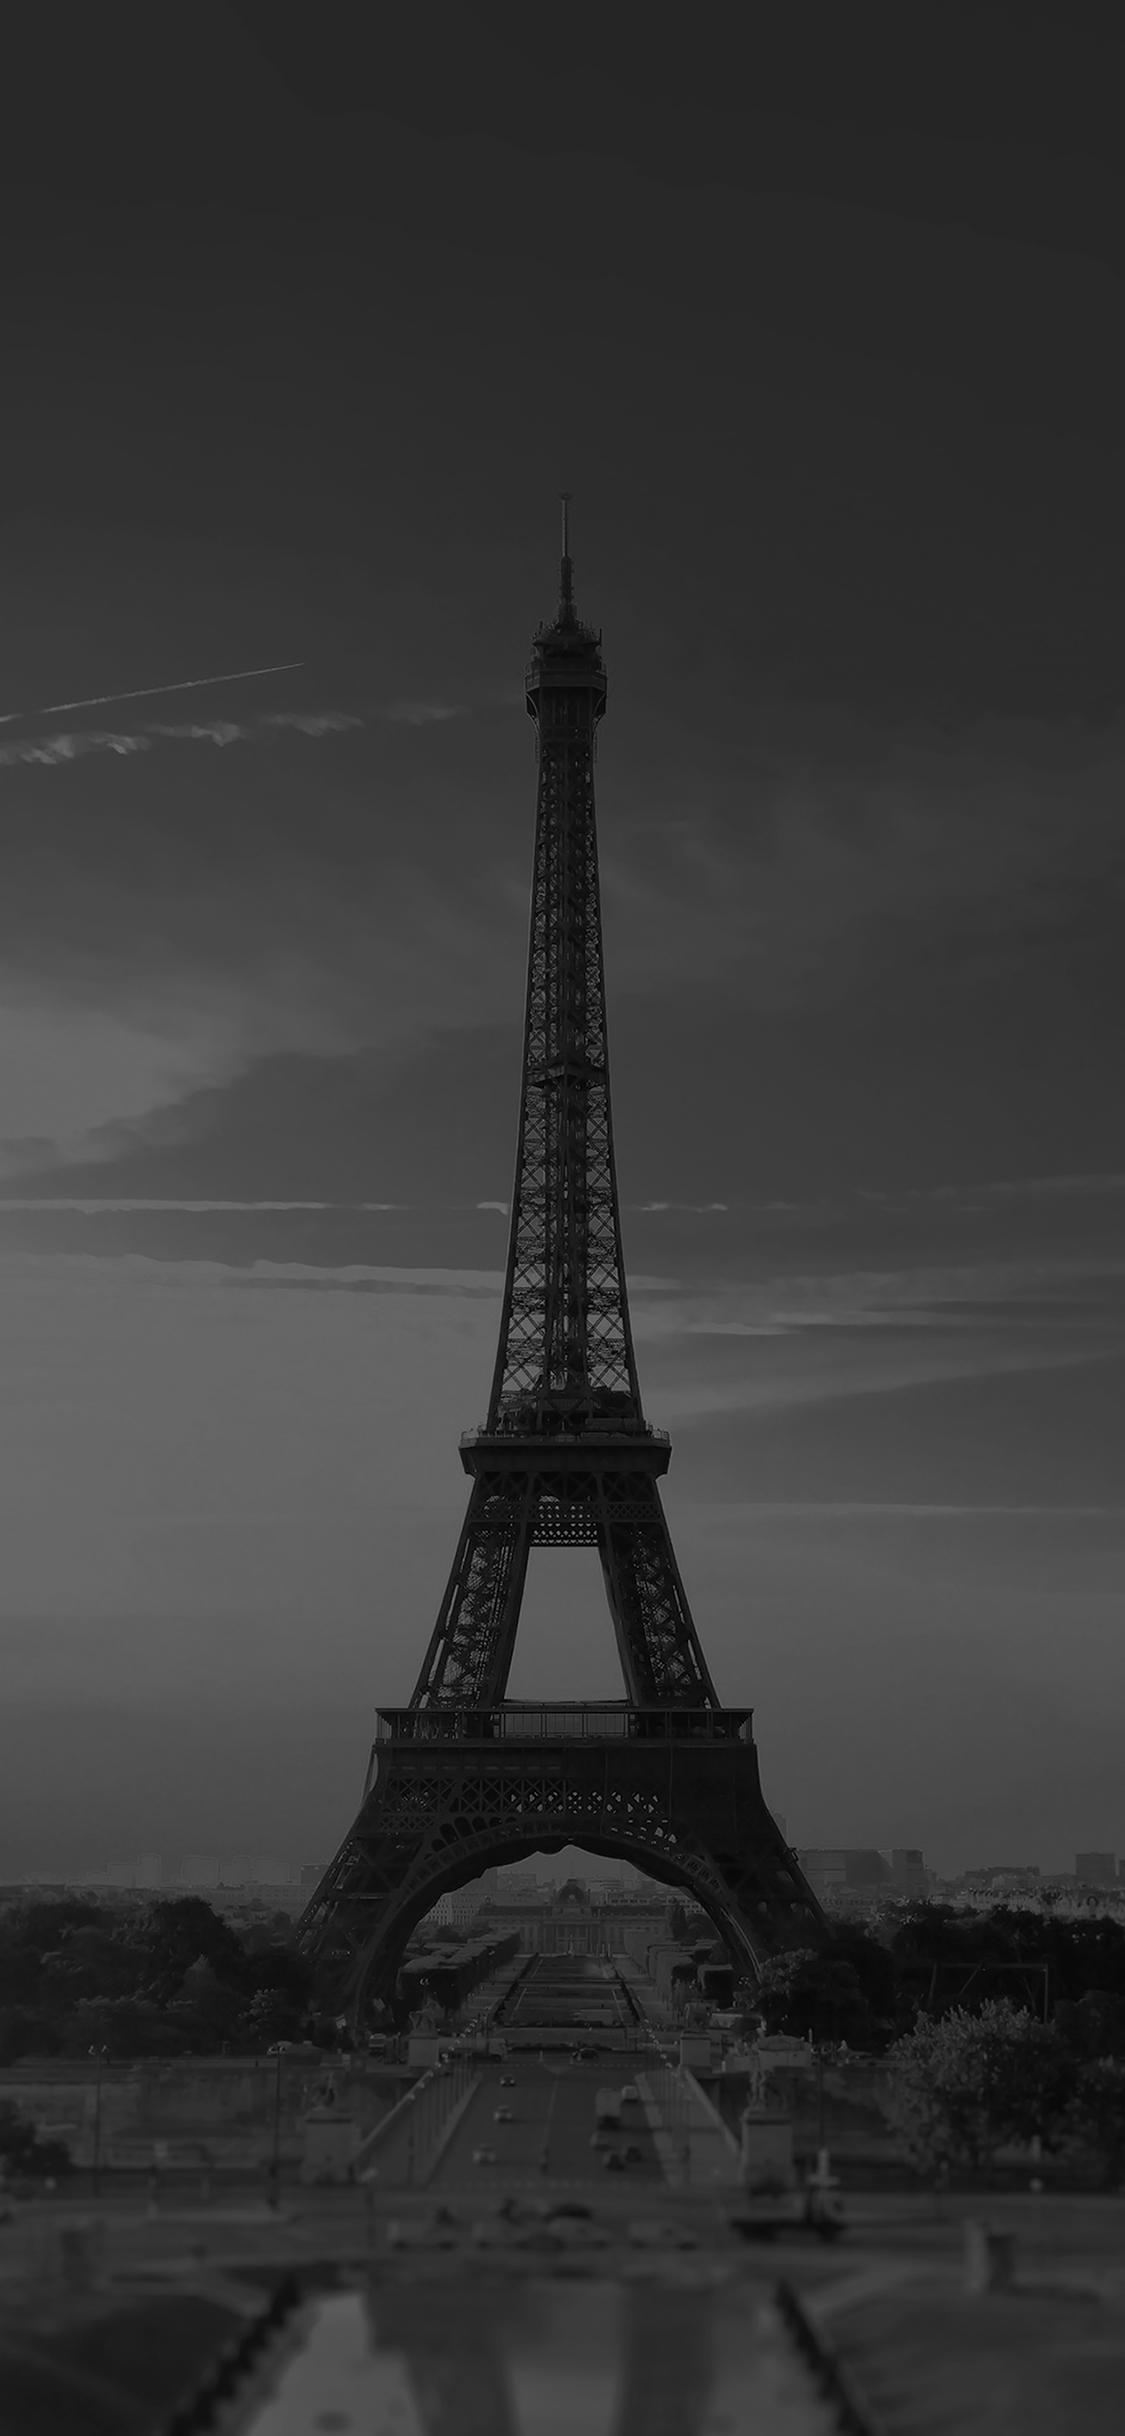 Mg41 City Of Love Paris Eiffel Tower France Black And White